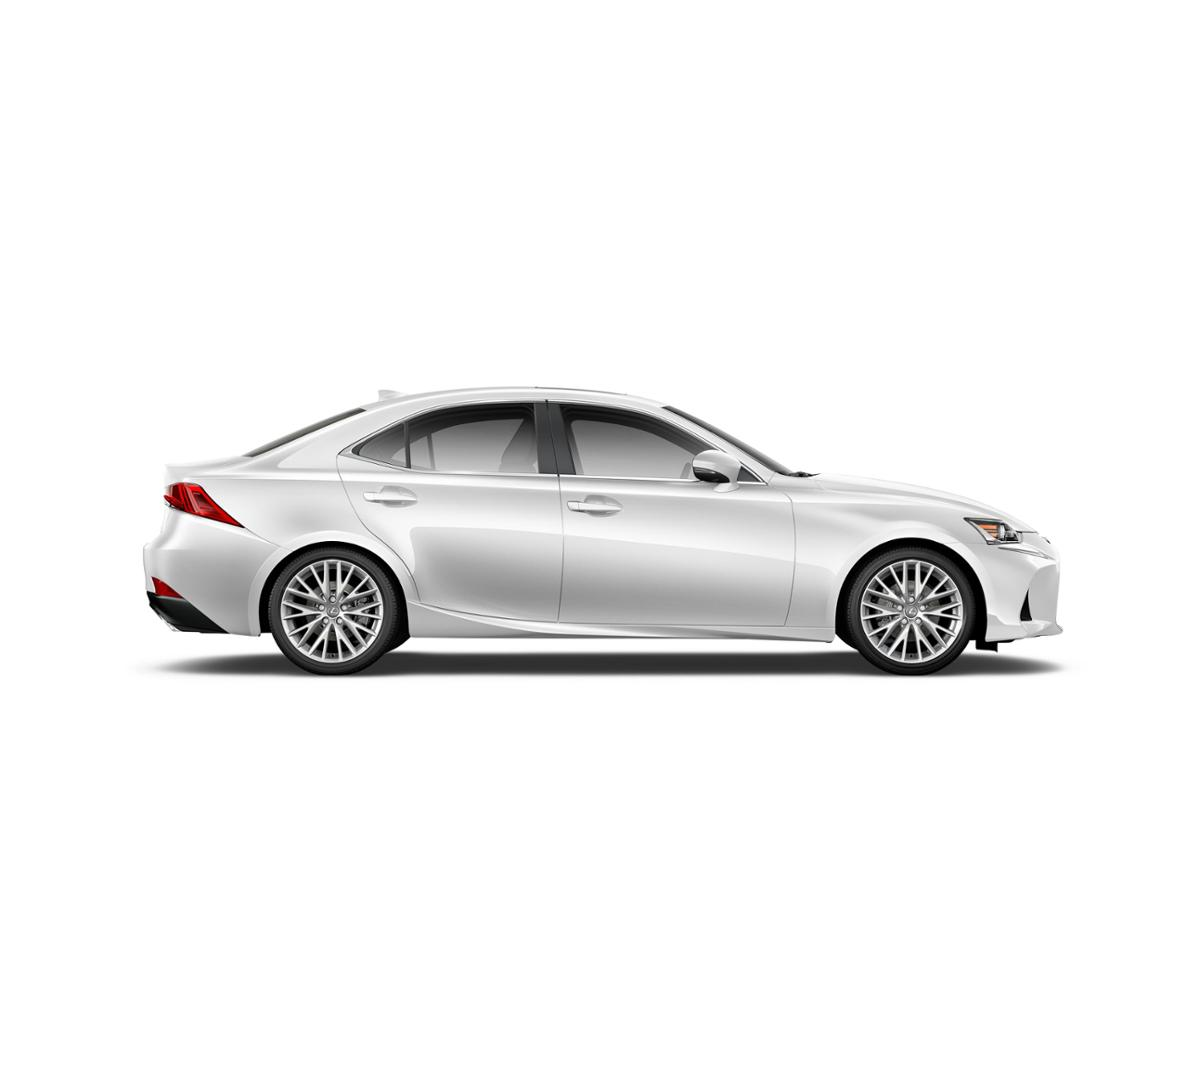 new 2017 lexus is turbo eminent white pearl for sale in houston pearland league city tx. Black Bedroom Furniture Sets. Home Design Ideas